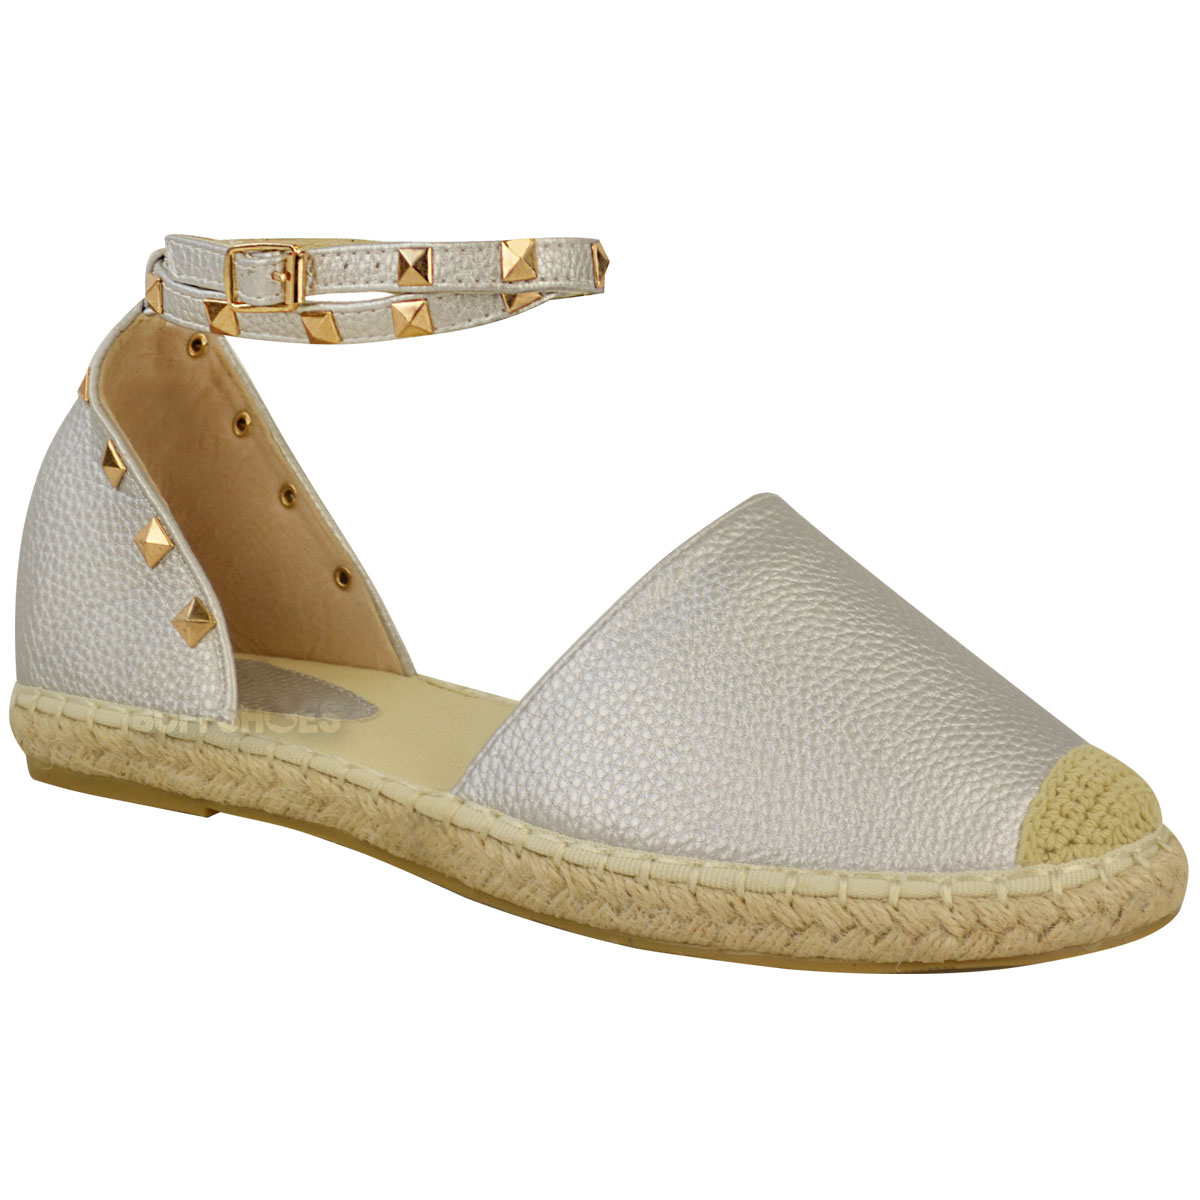 Women's Flat Comfy Espadrille Sandals Ladies Peep Toe Summer Flat Casual Shoes in Clothing, Shoes & Accessories, Women's Shoes, Flats & Oxfords Love the open toe; it's a flat and covers most of the foot for work appropriateness.